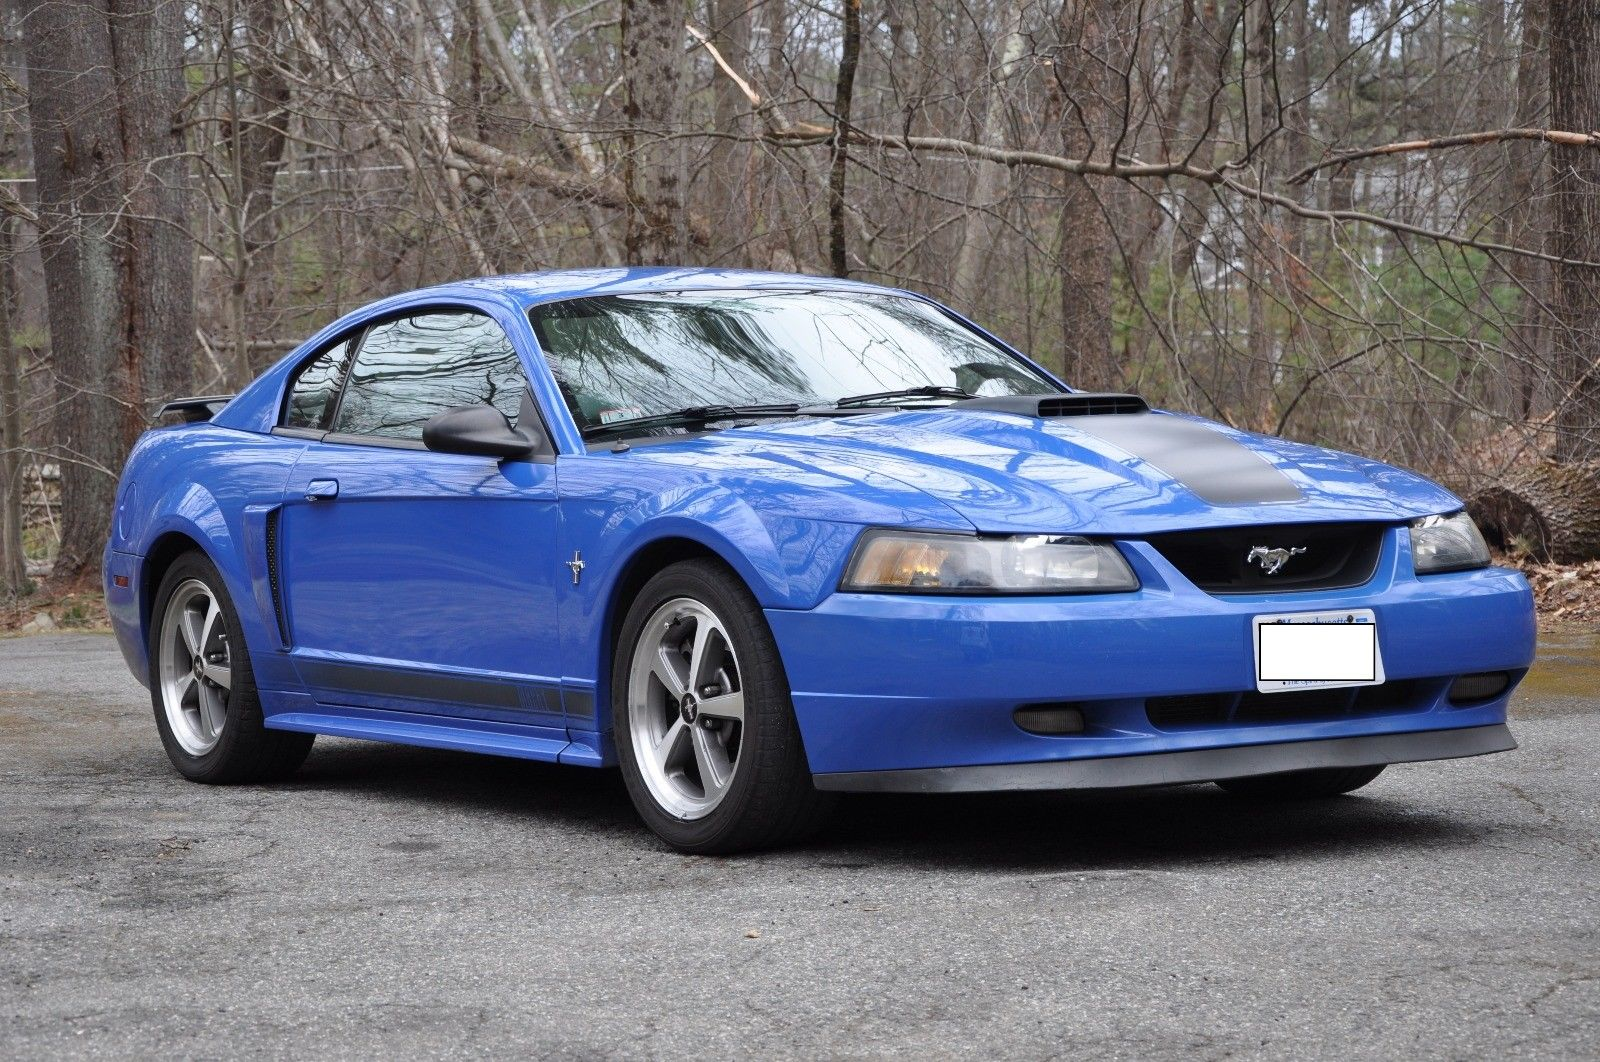 2017 Mustang Mach 1 >> Amazing 2003 Ford Mustang Mach 1 2003 Ford Mustang Mach 1 2017 2018